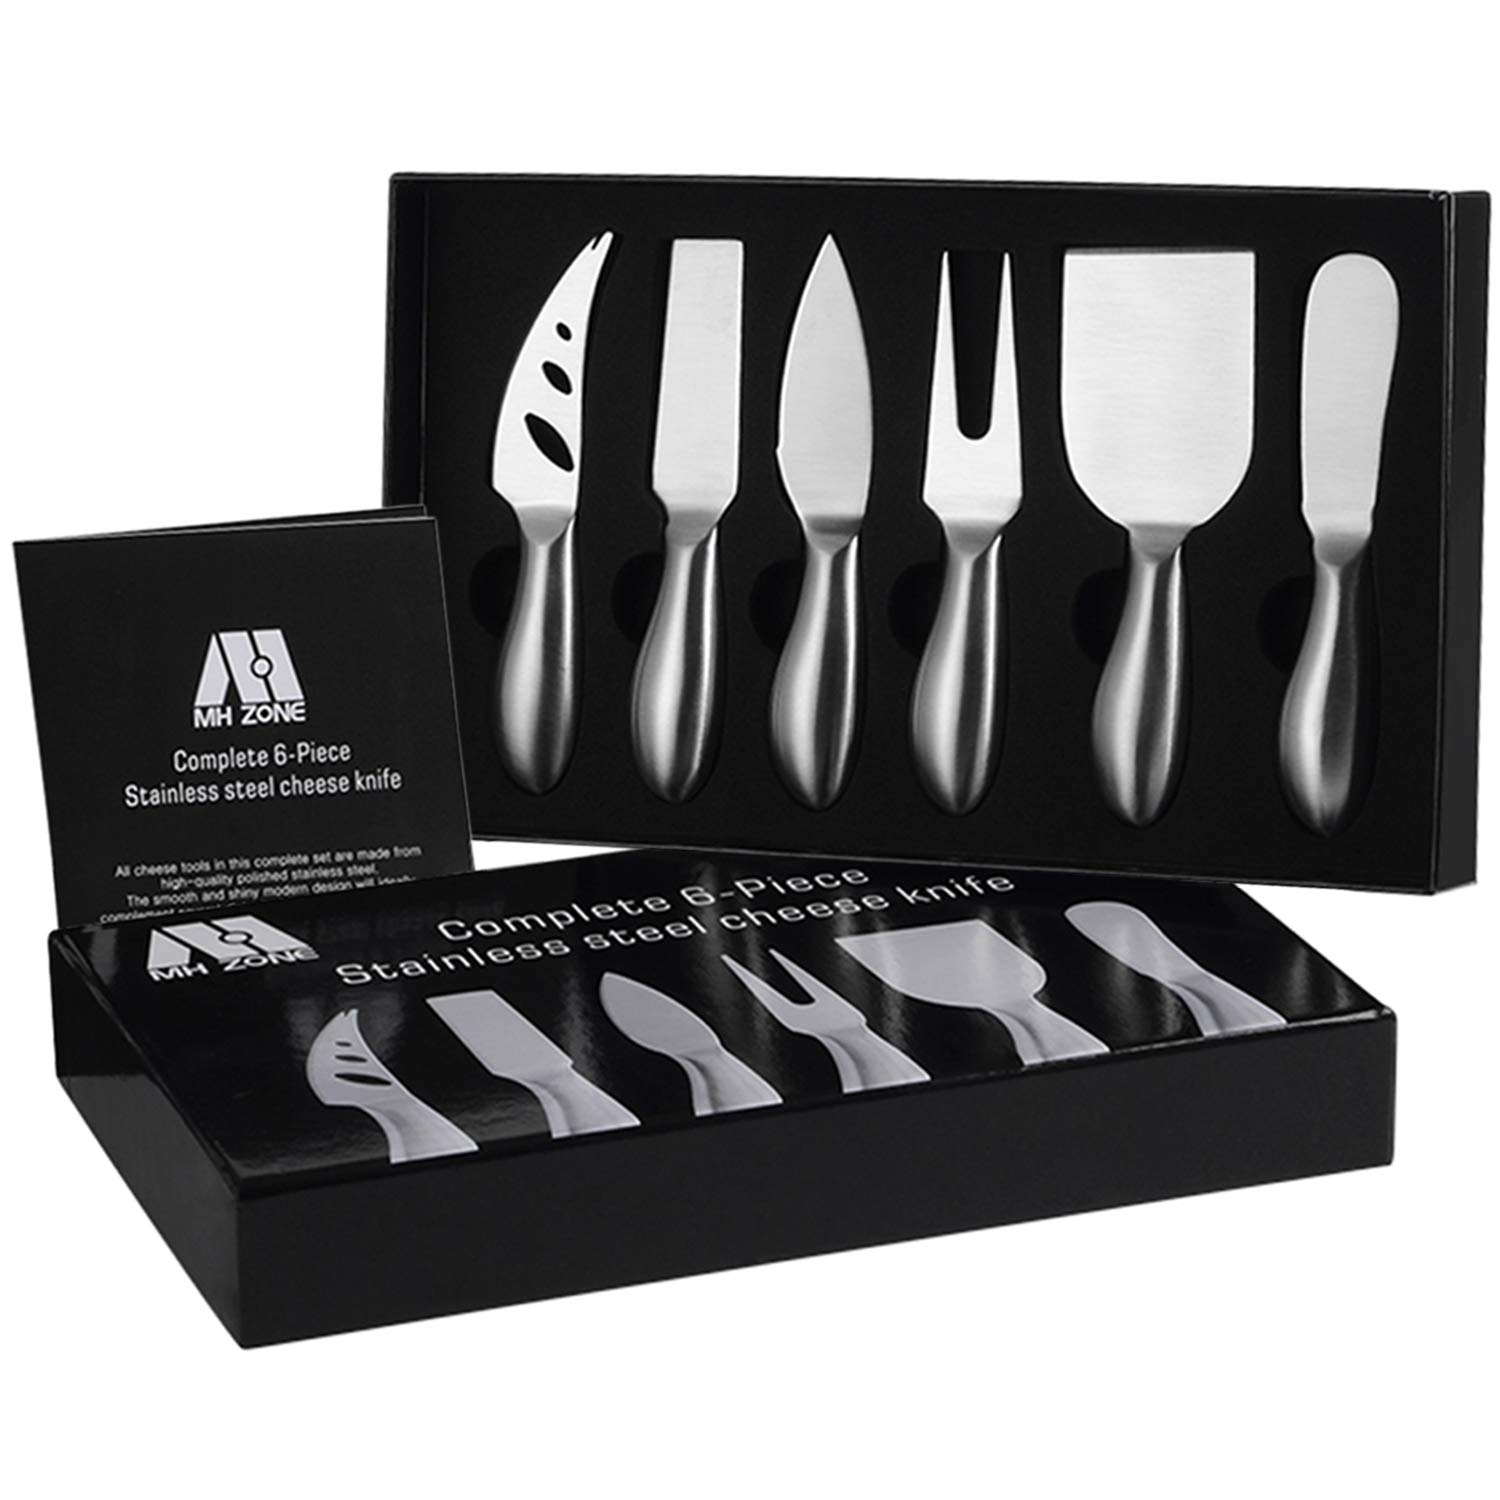 Premium 6-Piece Cheese Knife Set - MH ZONE Complete Stainless Steel Cheese Knives Gift Knives Sets Collection, Suit for the Wedding, Lover, Elders, Children and Friends, Perfect Christmas Gift by M MH ZONE